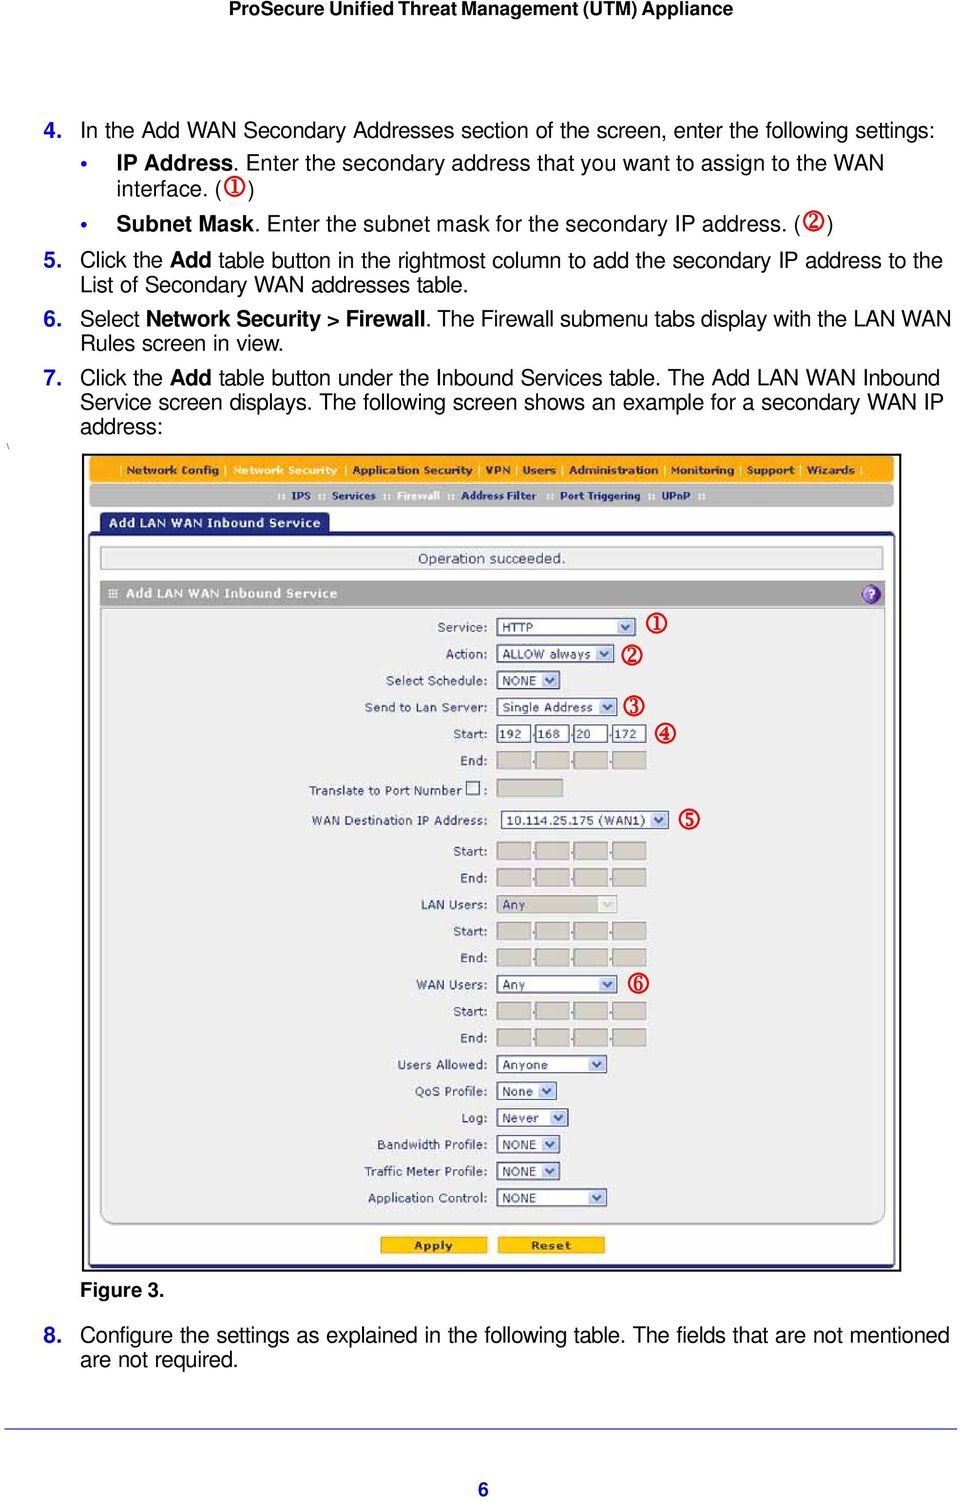 Select Network Security > Firewall. The Firewall submenu tabs display with the LAN WAN Rules screen in view. 7. Click the Add table button under the Inbound Services table.